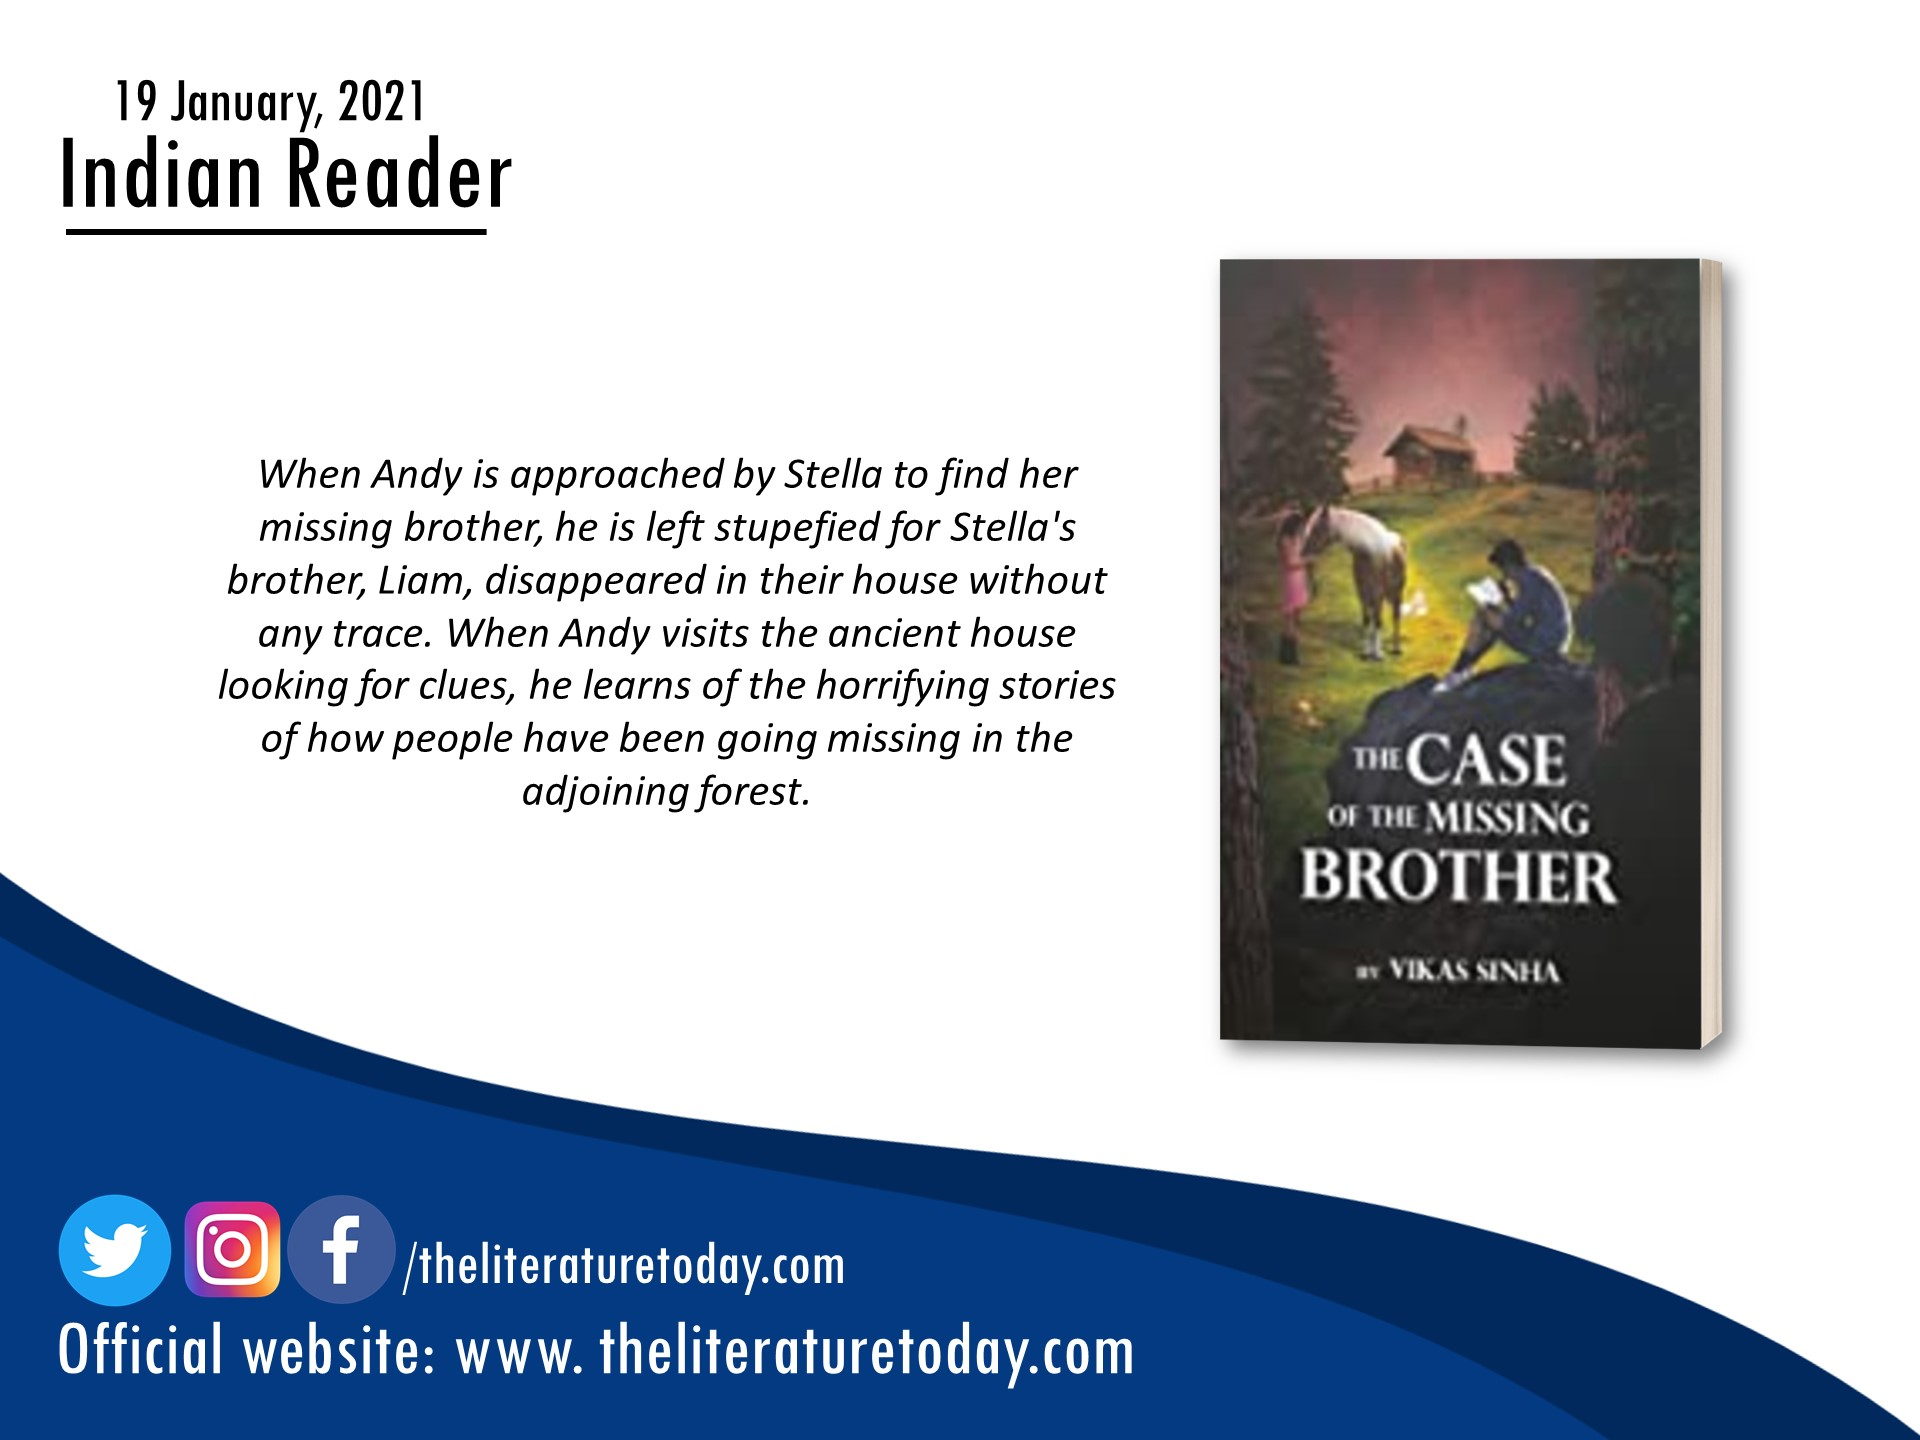 Book Review The Case of the Missing Brother by Vikas Sinha at The Literature Today